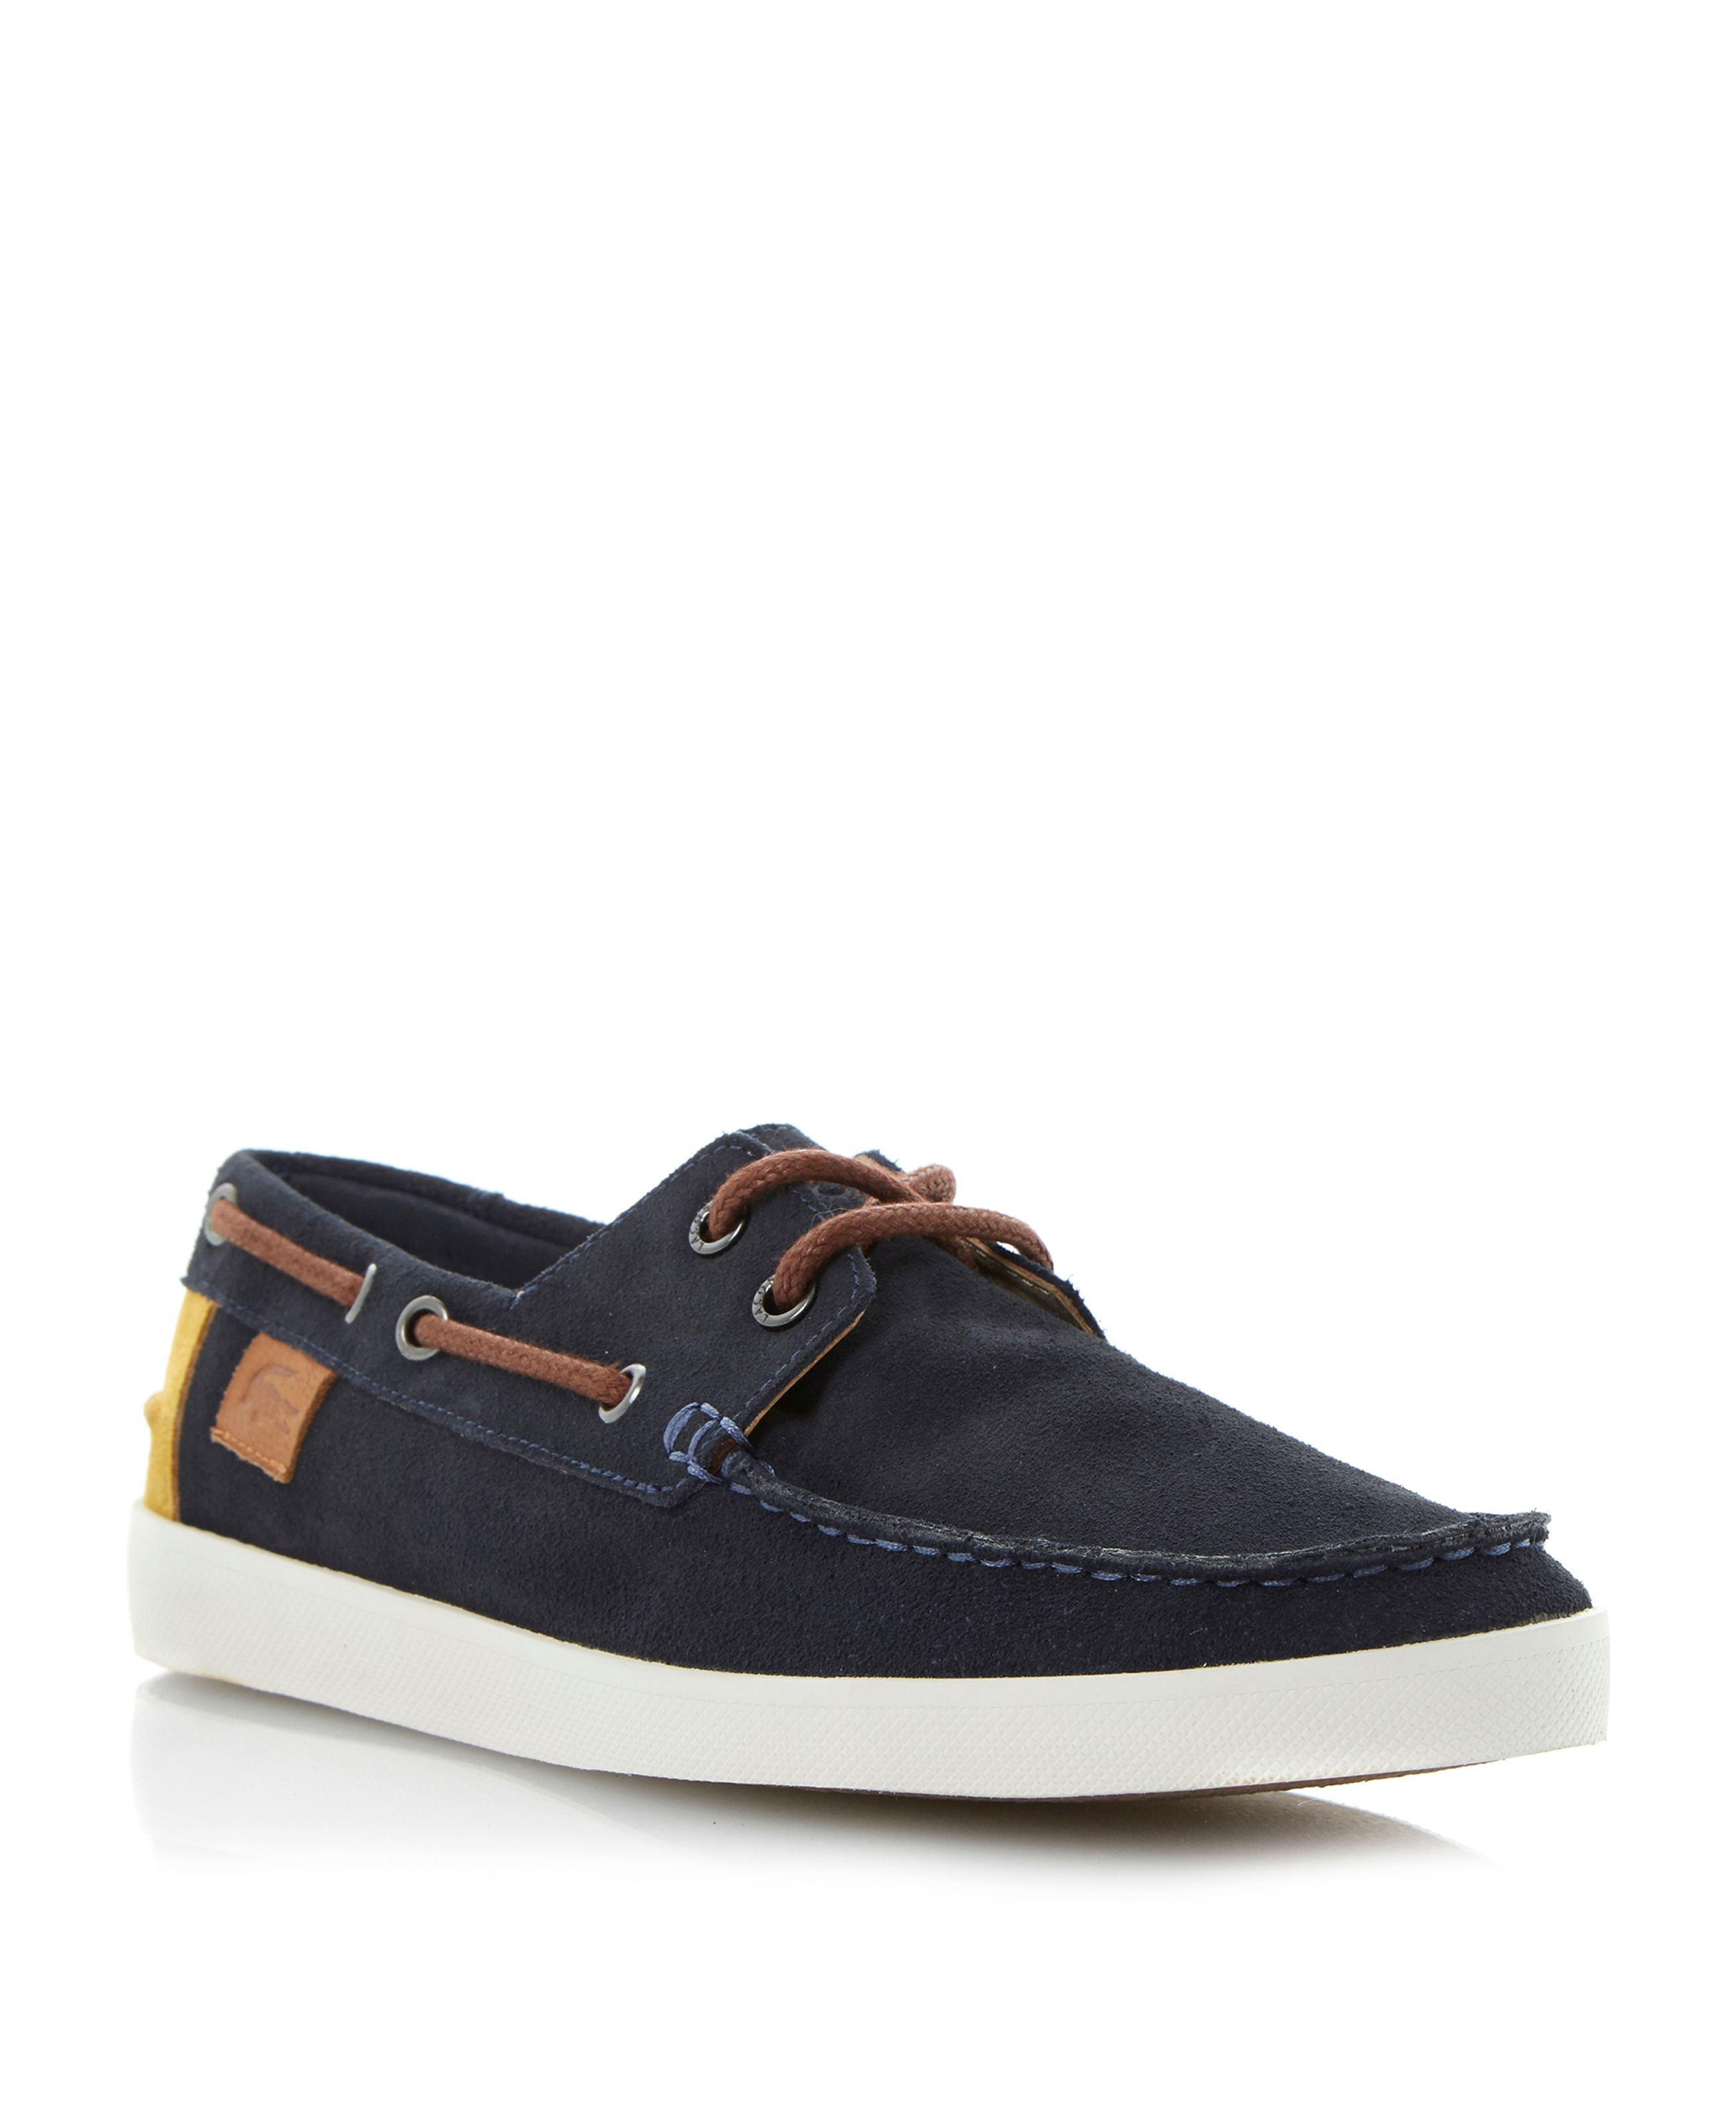 Keellson suede lace up boat shoes